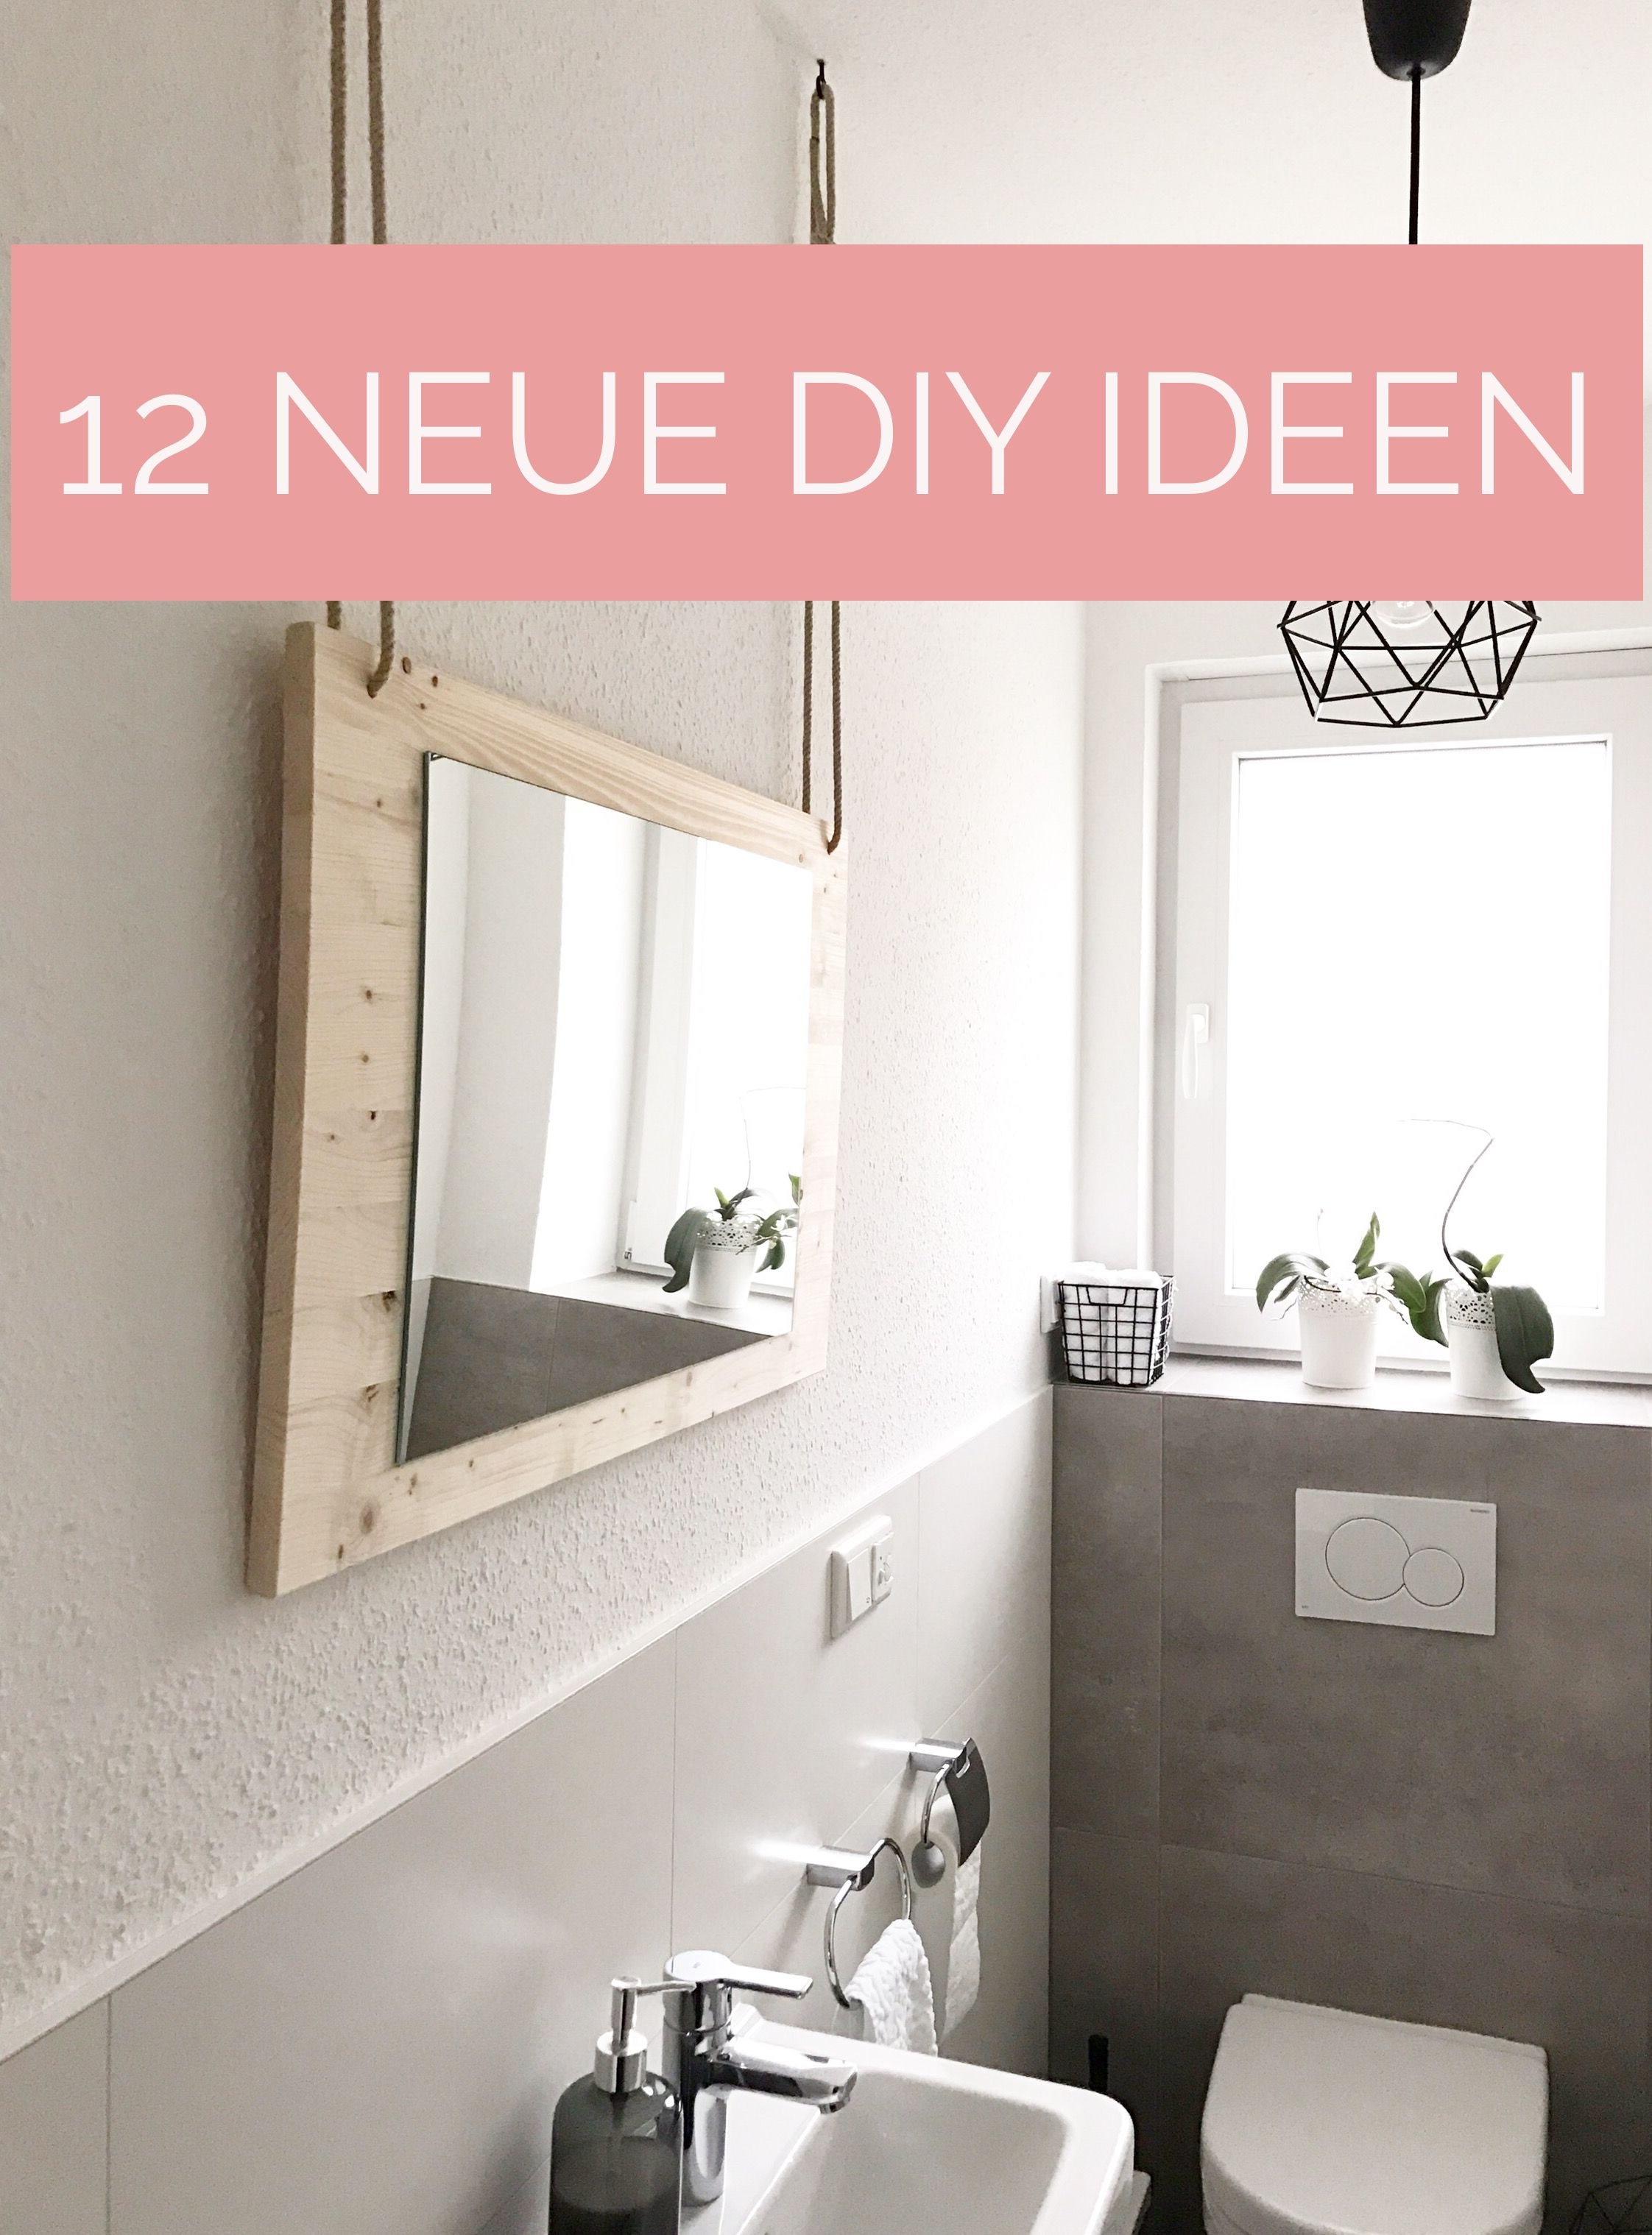 DIYnstag: 13 neue DIY-Ideen | DIY | Diy bathroom decor ...